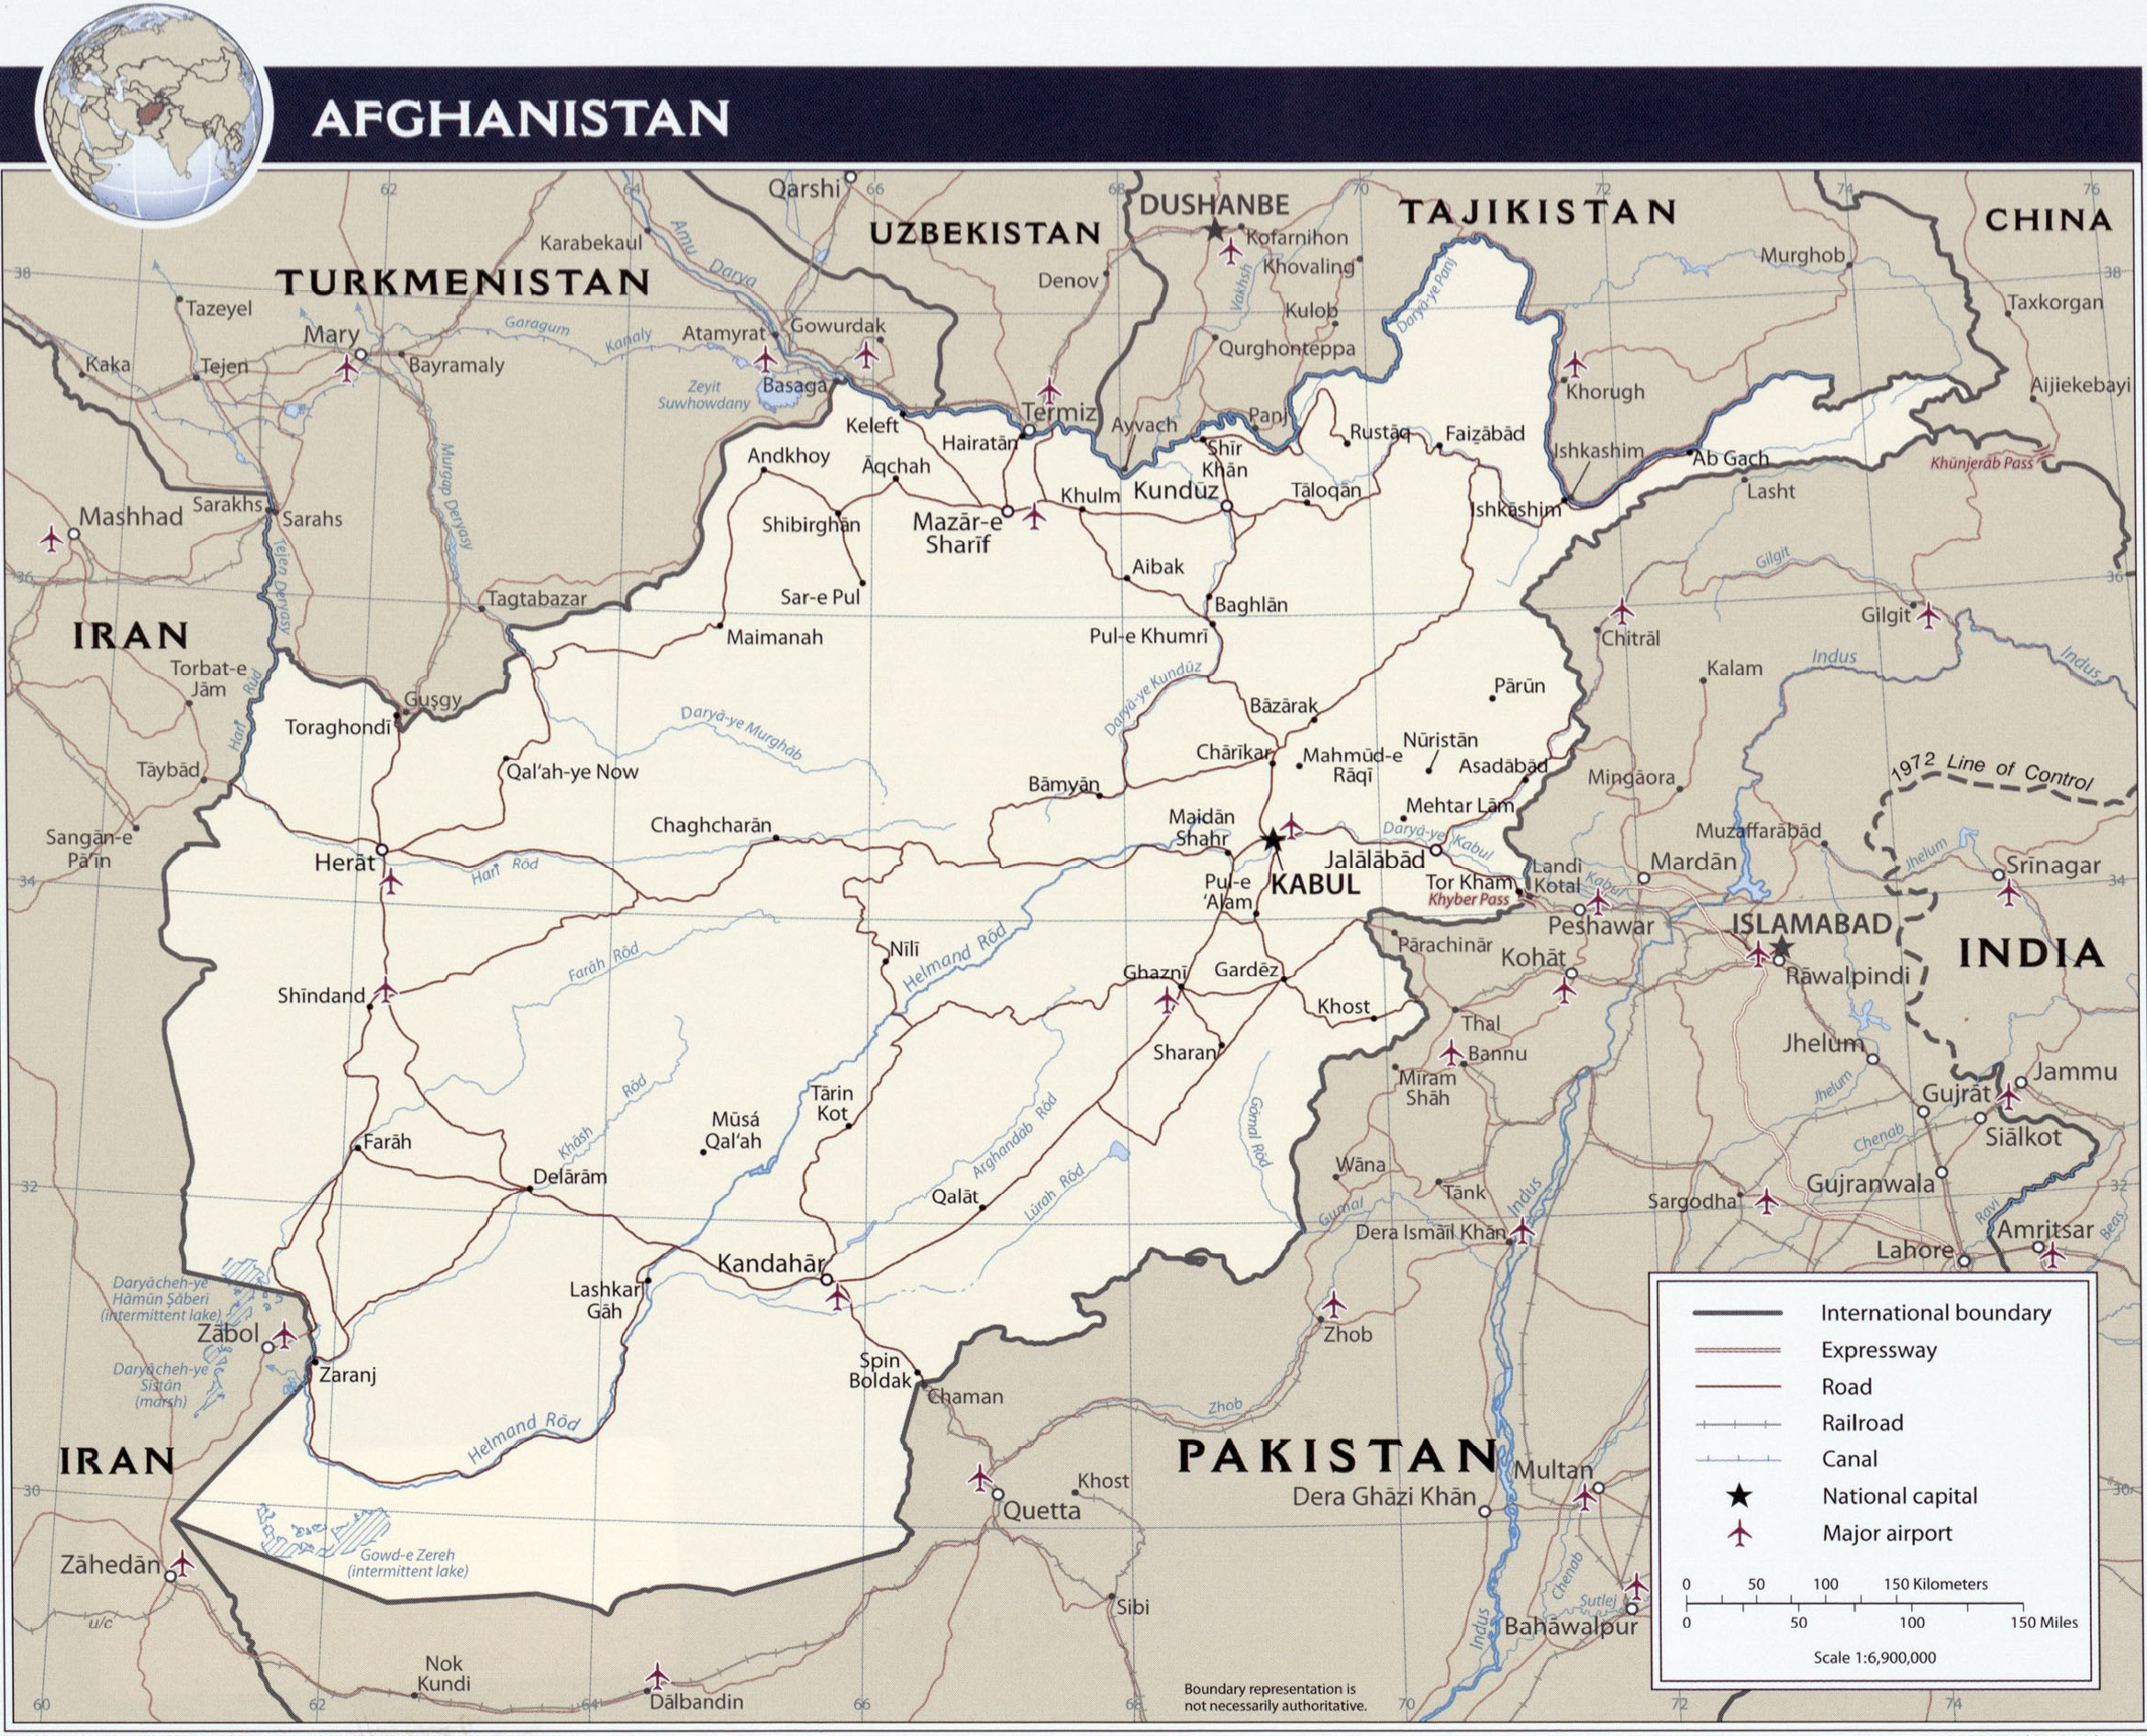 Railway freight transportation to Afghanistan